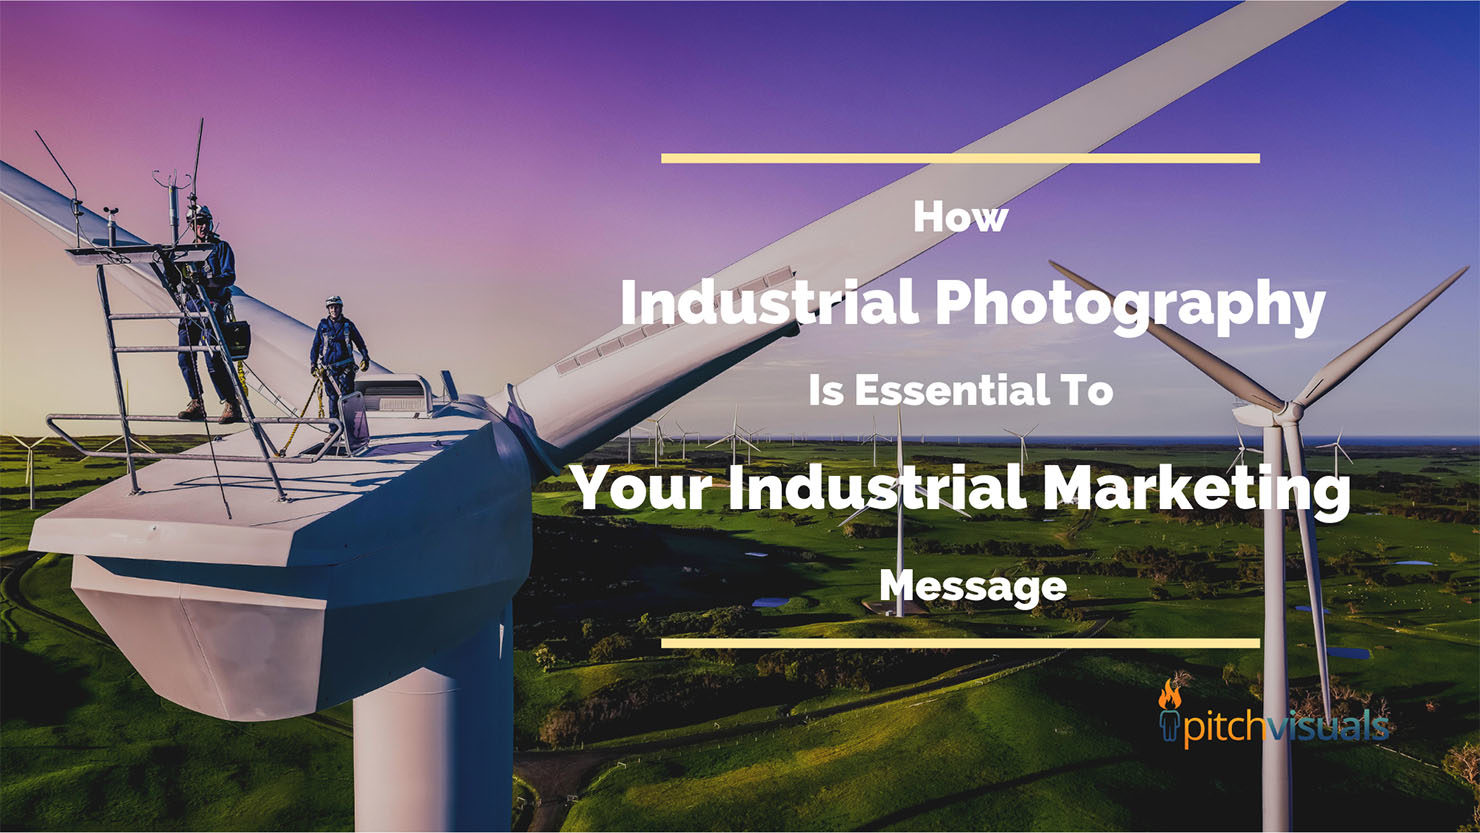 How Industrial Photography is Essential to Your Industrial Marketing Message